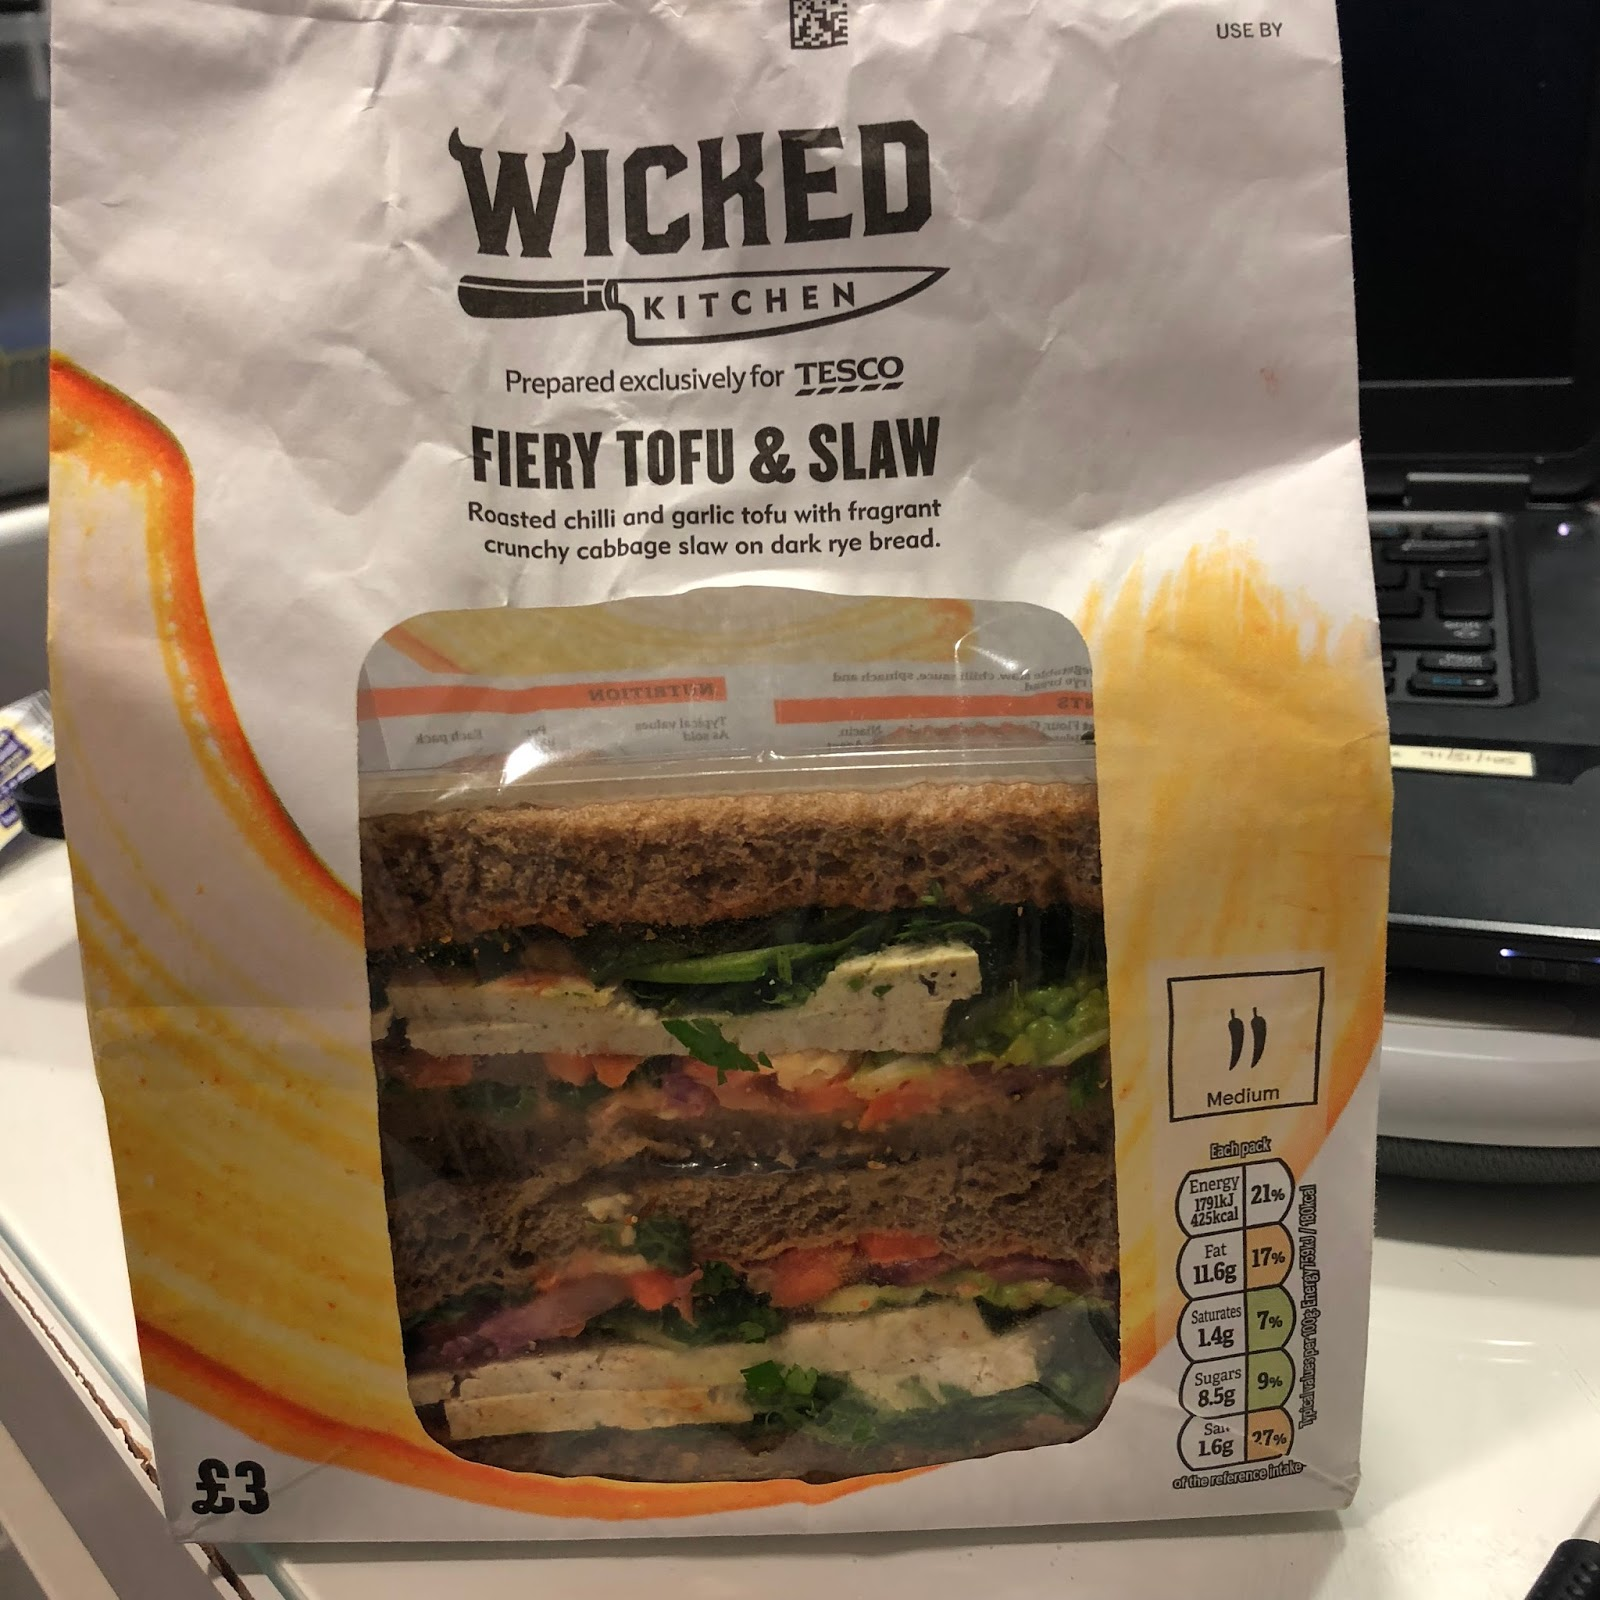 theyre not lying when they say fiery this sammie is warm but i like the spice so i enjoyed it it could do with a bit of seasoning but youll see thats - Wicked Kitchen